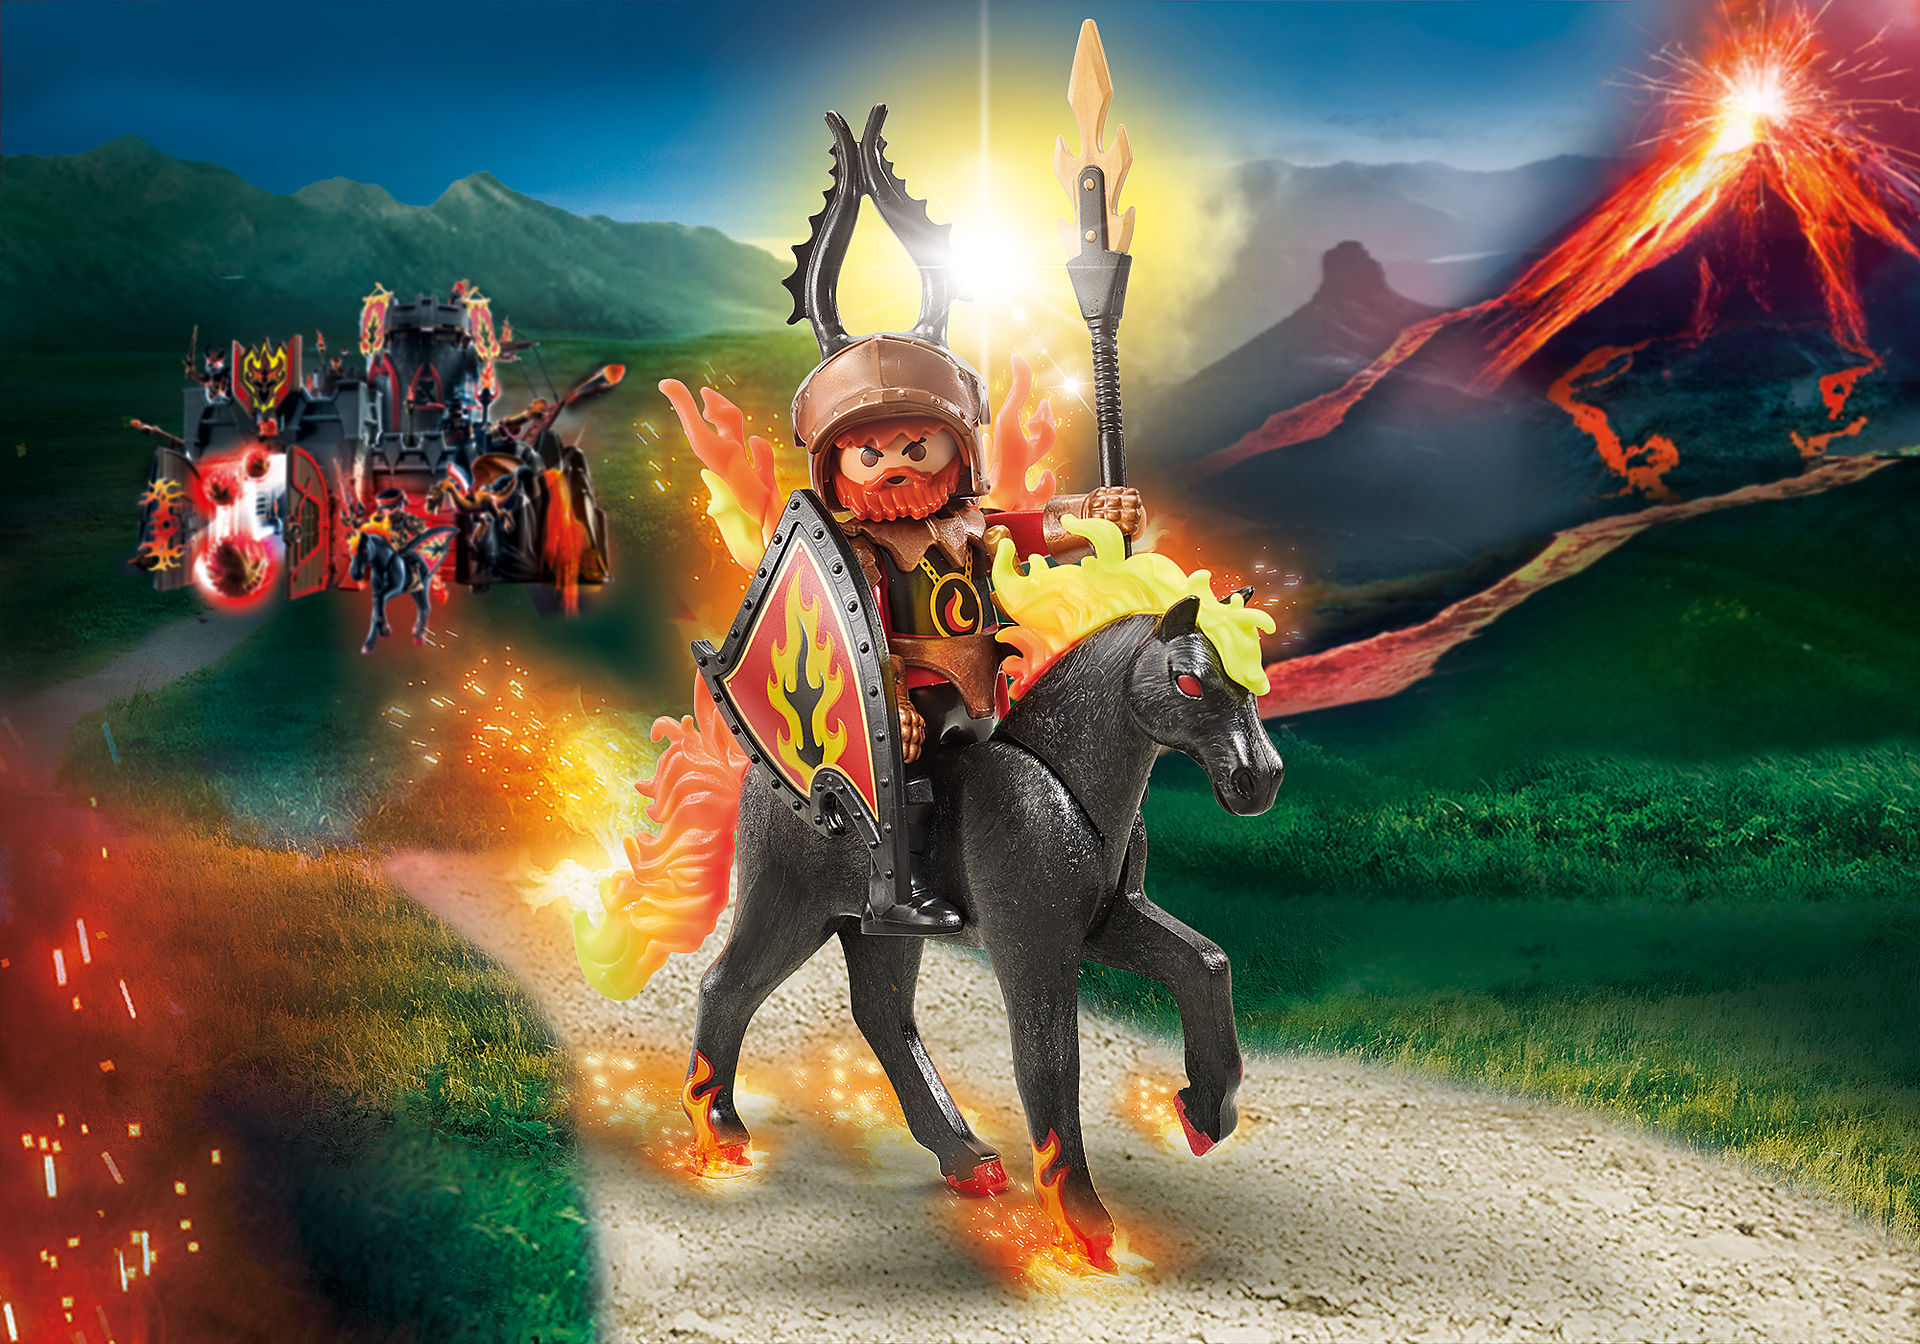 9882 fire horse with rider zoom image1